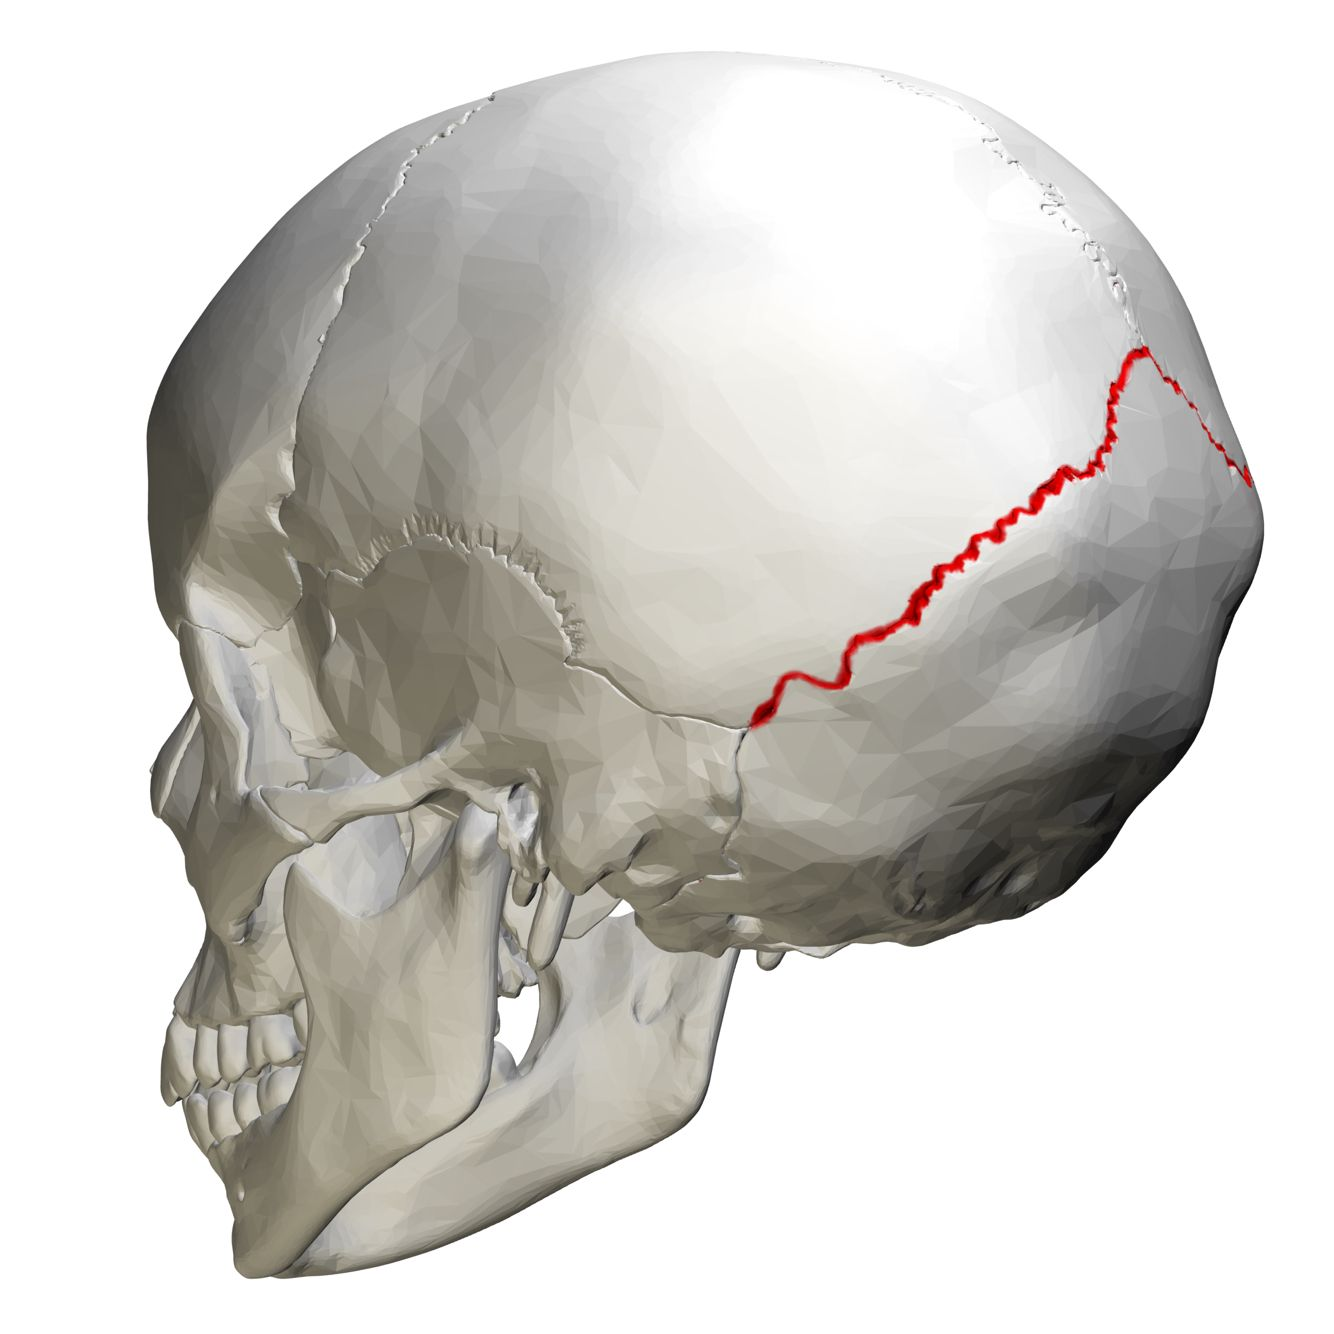 Lambdoid suture : articulate parietal bones with occipital bone ...